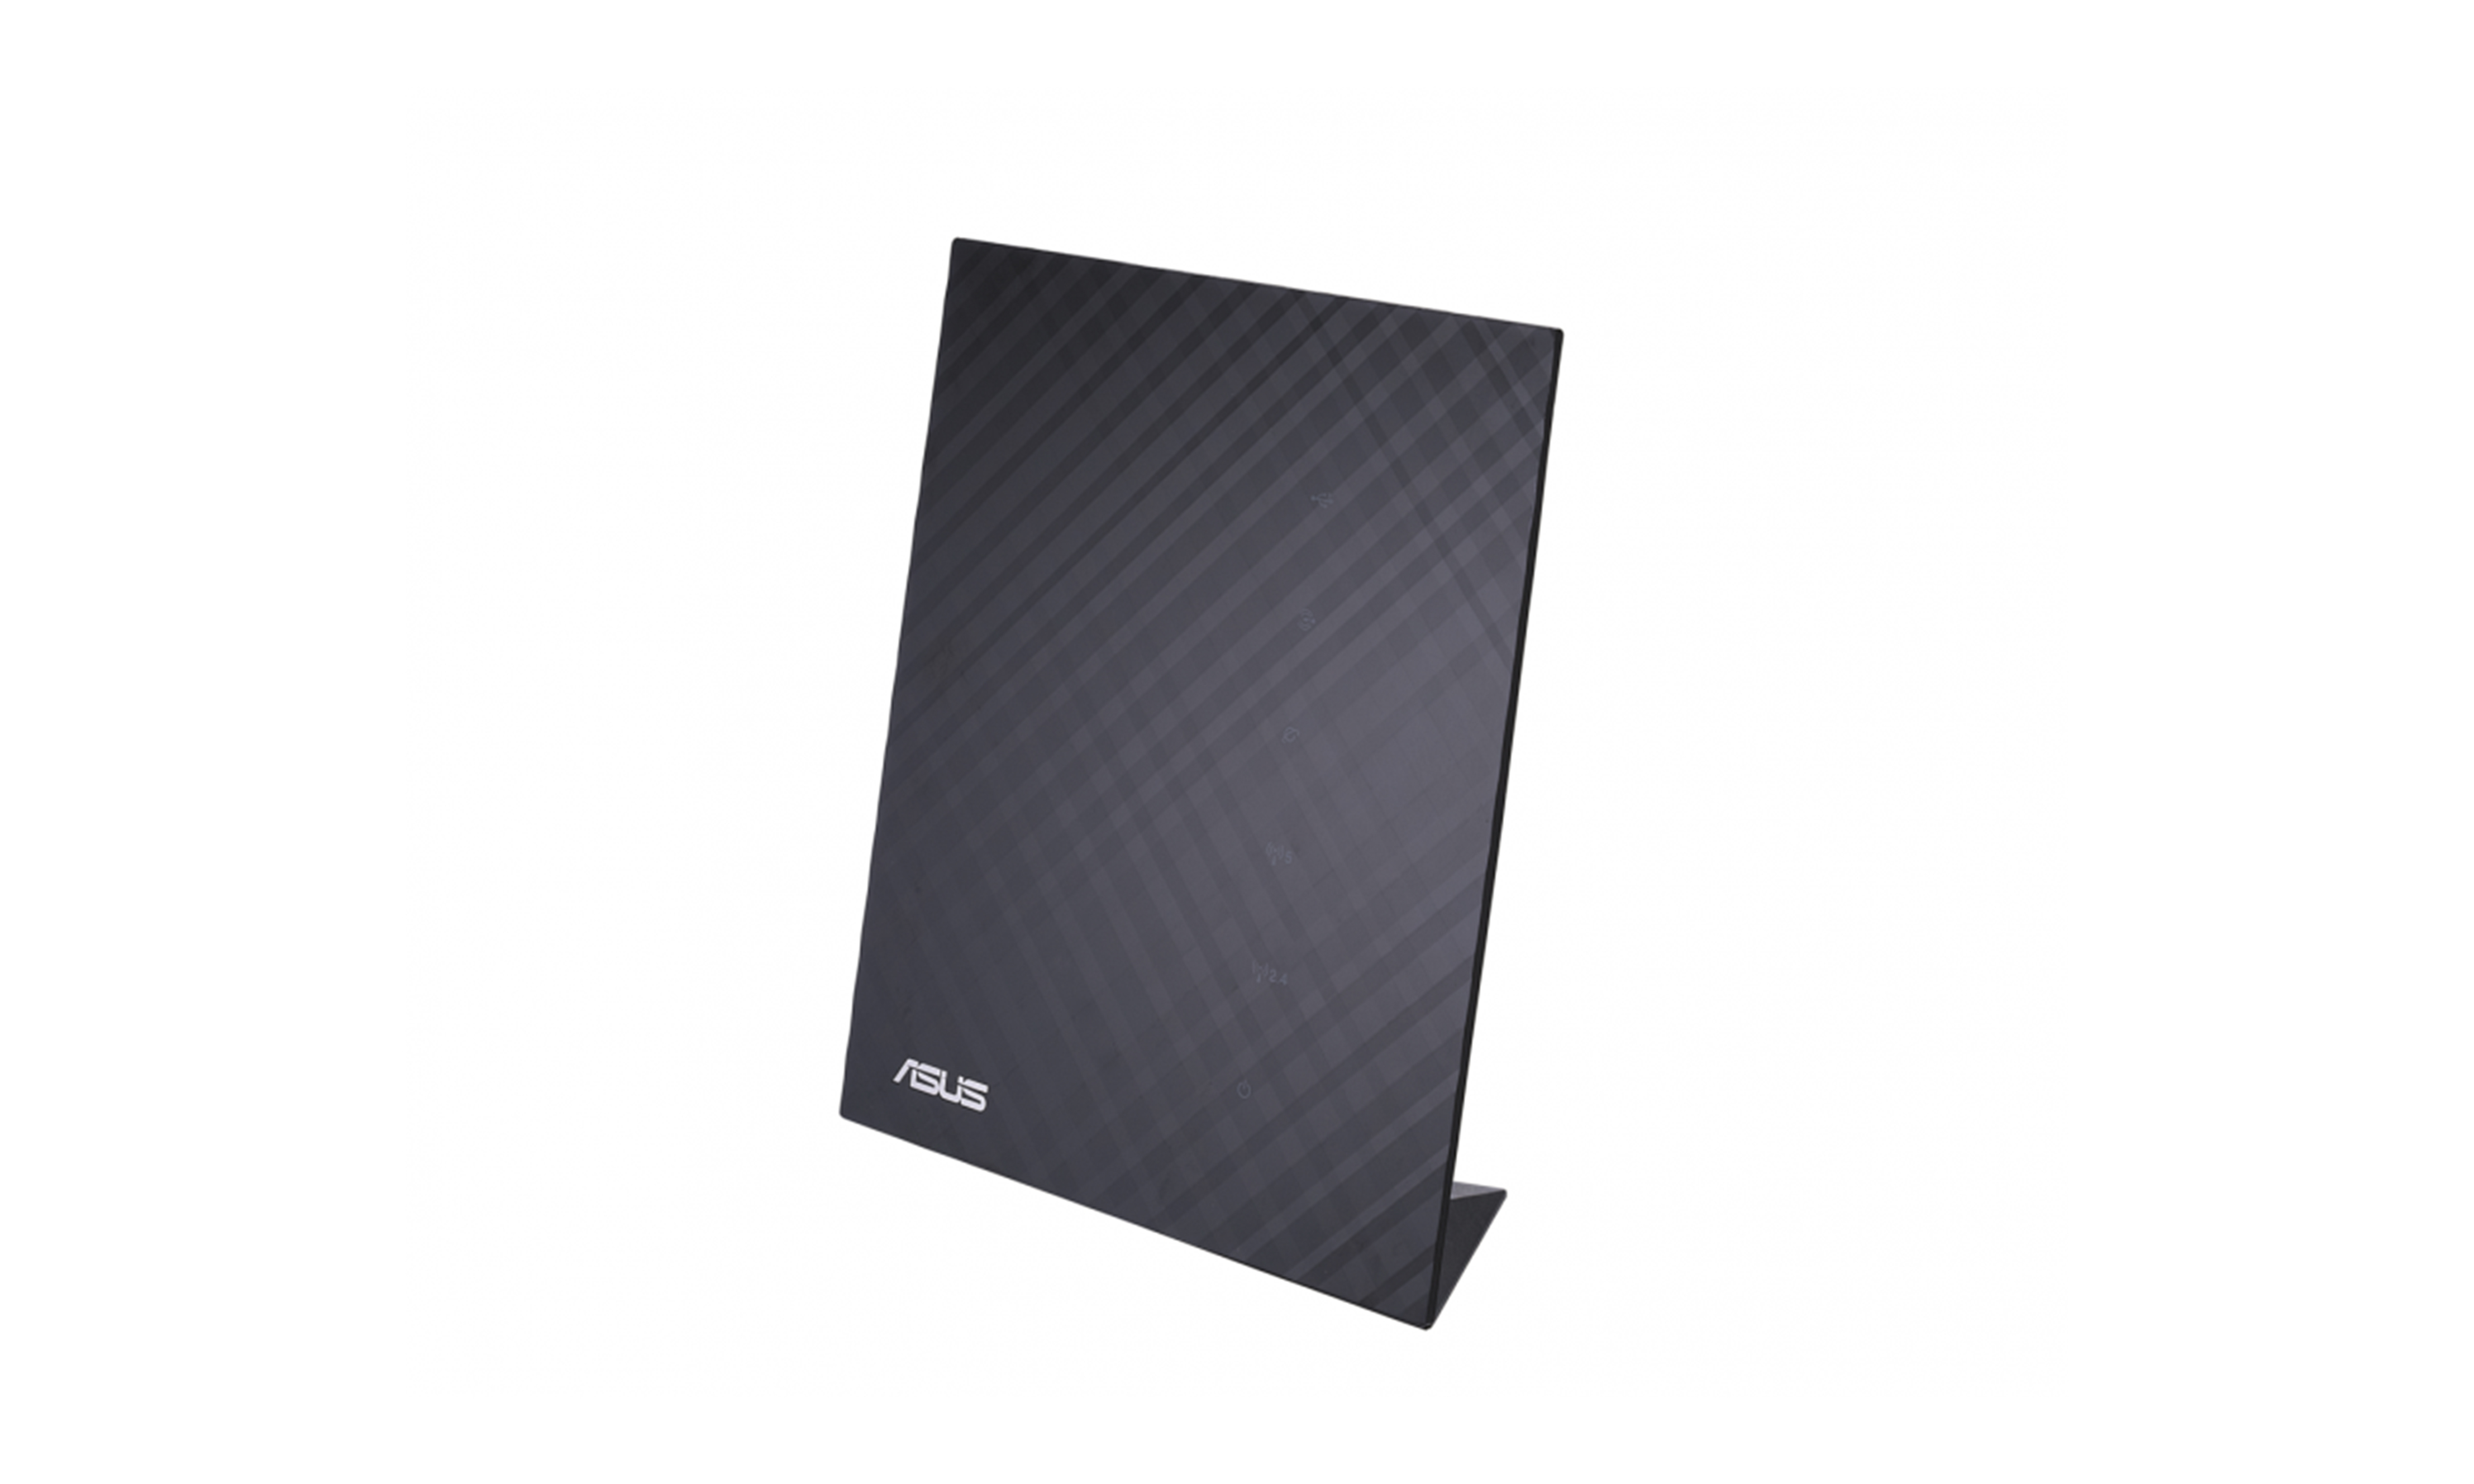 ASUS RT-N56U WIRELESS ROUTER DRIVER FOR WINDOWS 7